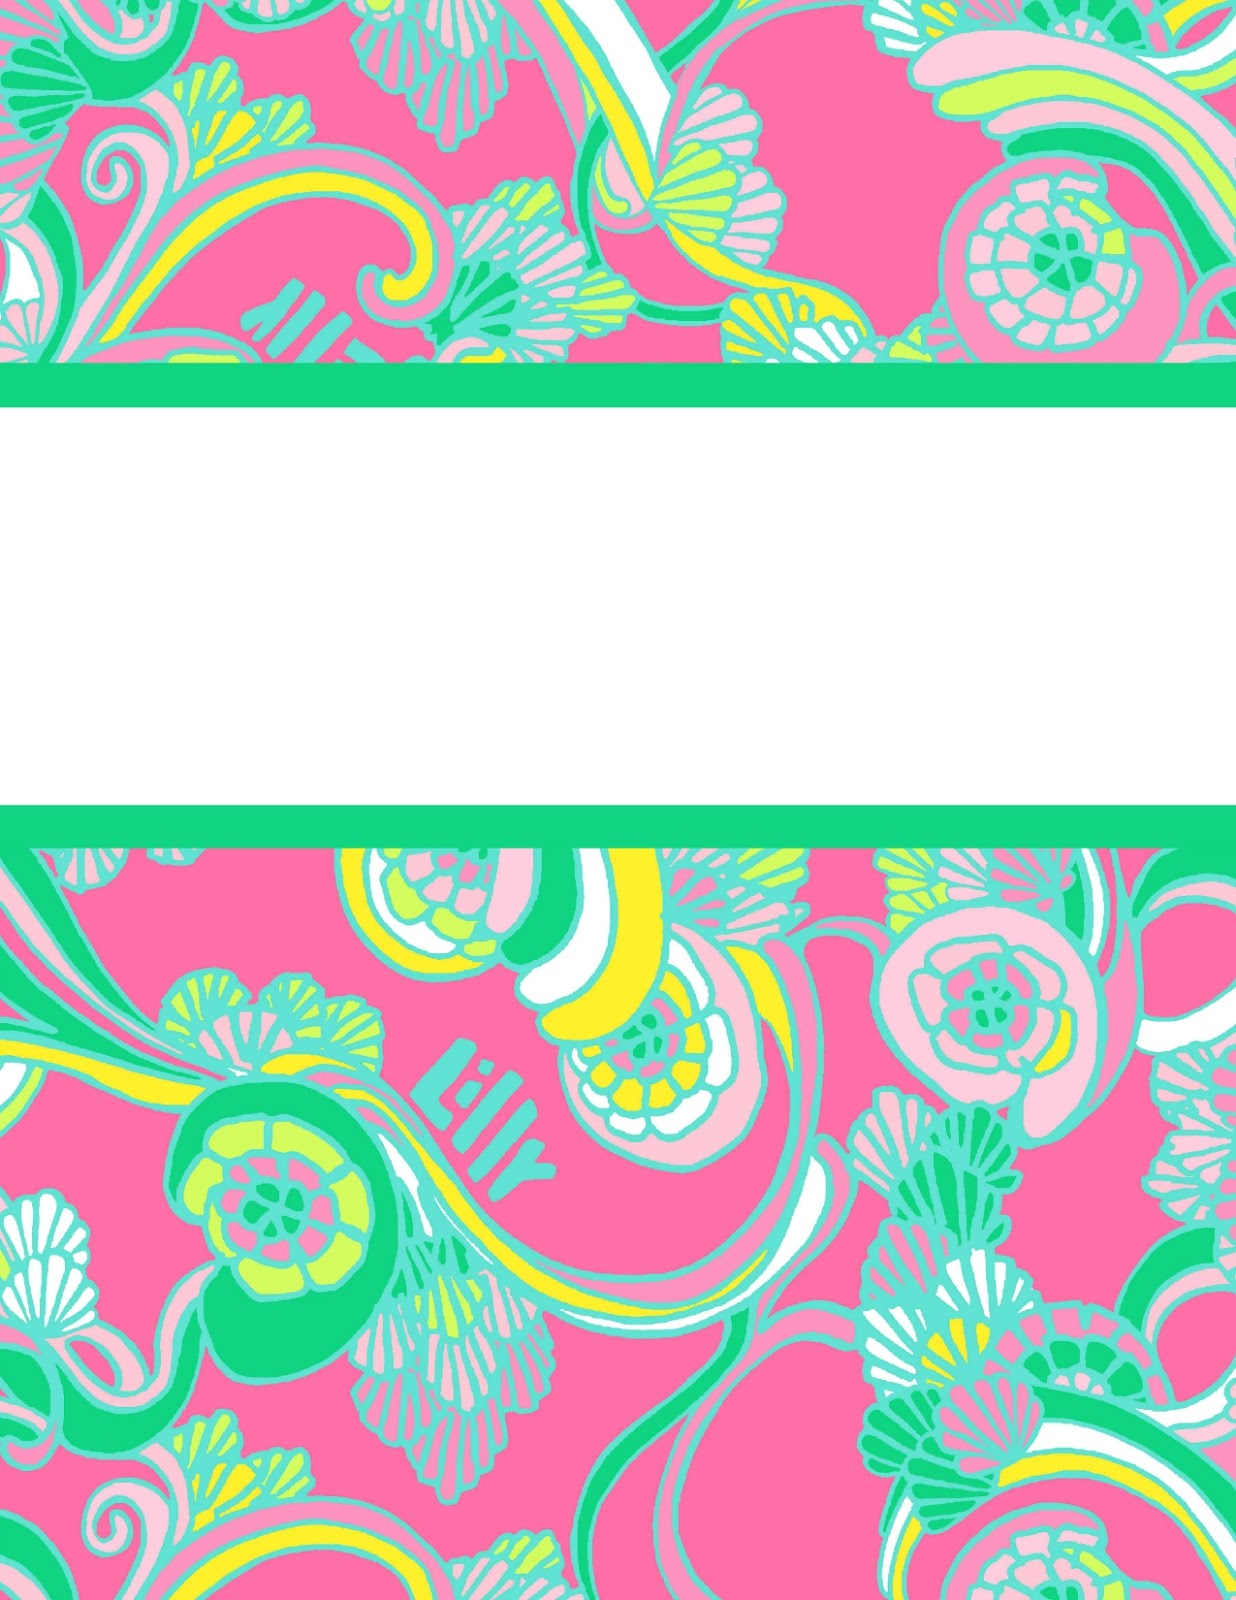 Binder Cover Templates!